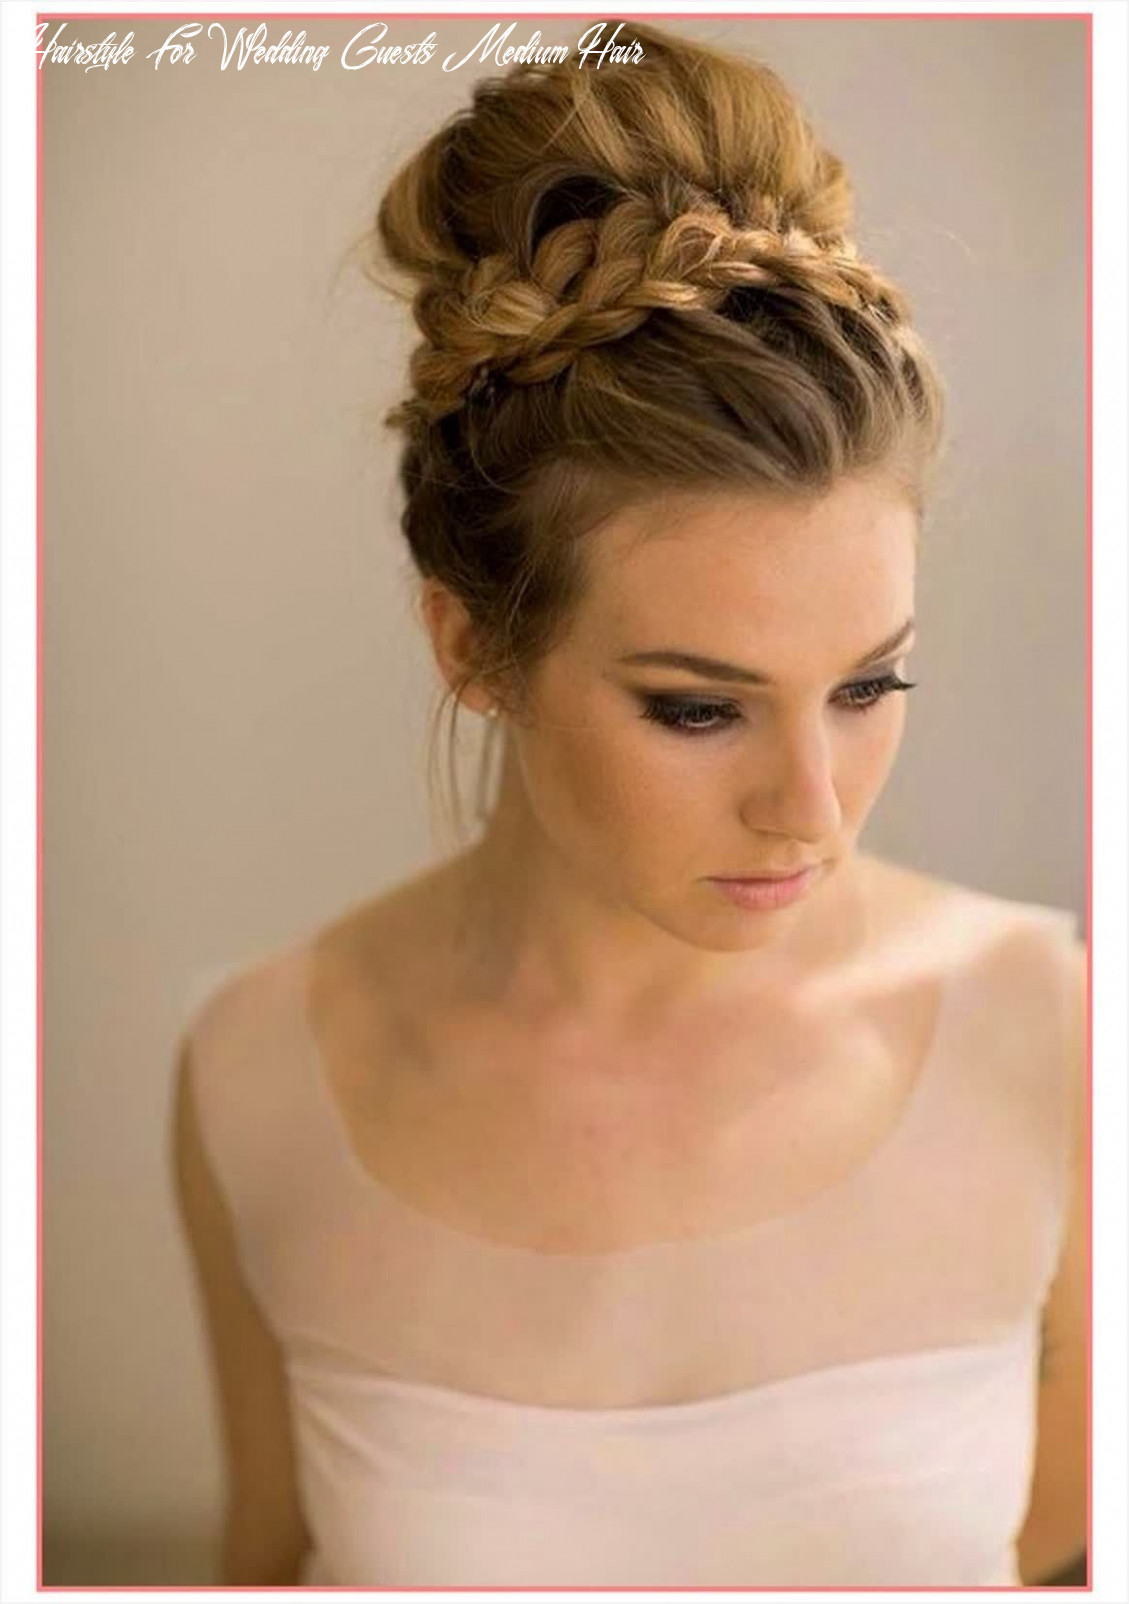 12 Cute Hairstyles for Wedding Guests 12 Best Wedding Guest ...